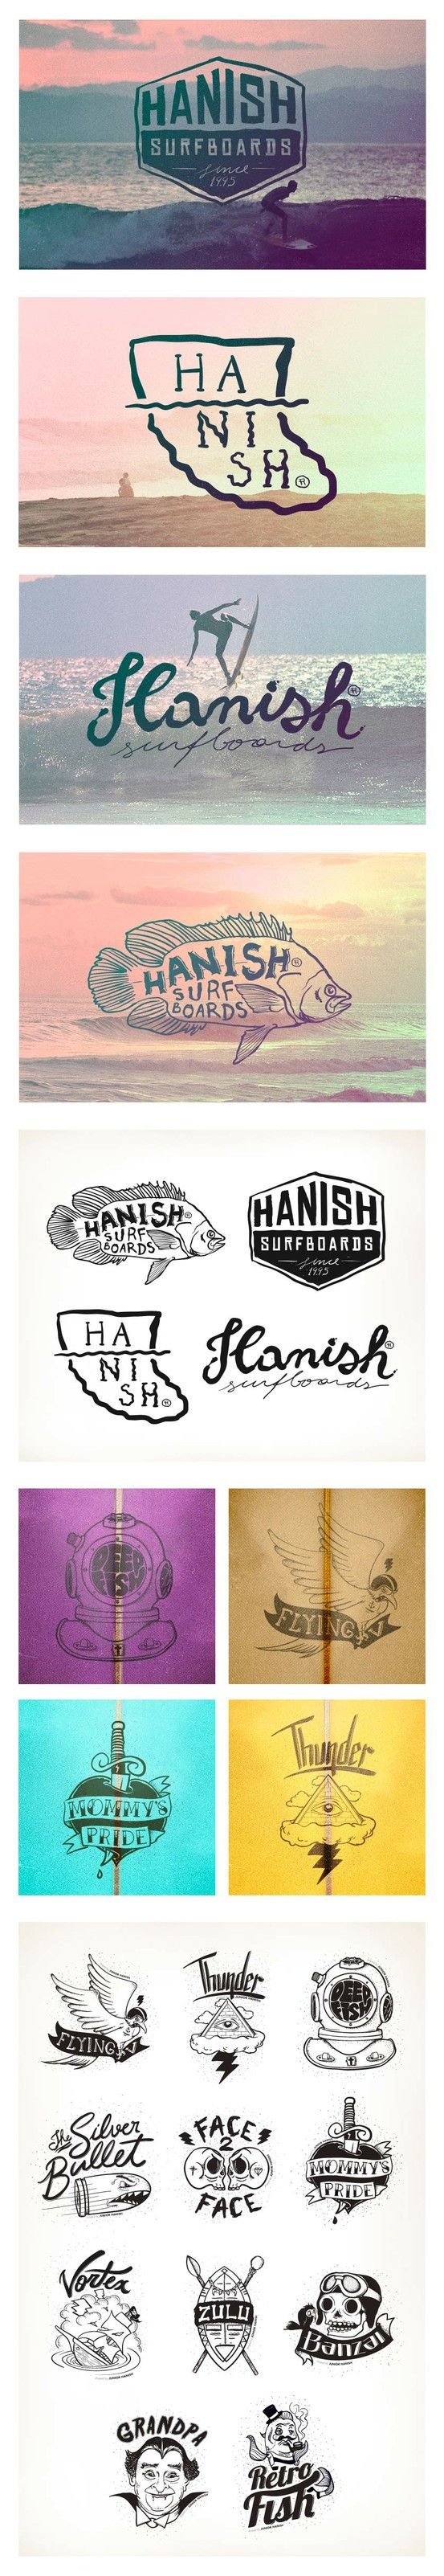 Identidade visual de logos surf Hanish, www.BlickeDeeler.de | Take a look at www.LogoGestaltung-Hamburg.de